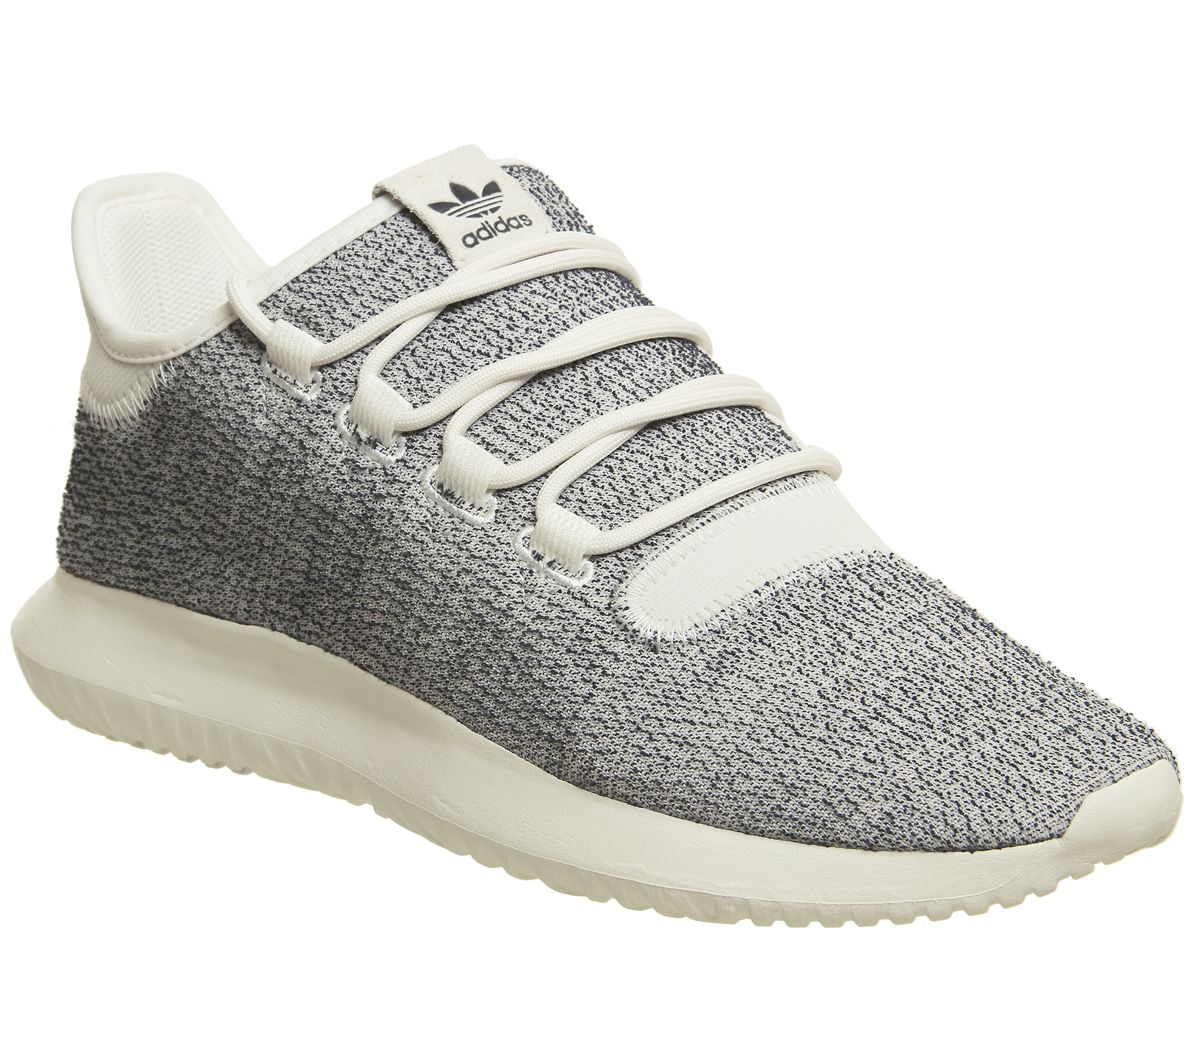 sale retailer 1188c fbac9 adidas Tubular Shadow Off White - Hers trainers